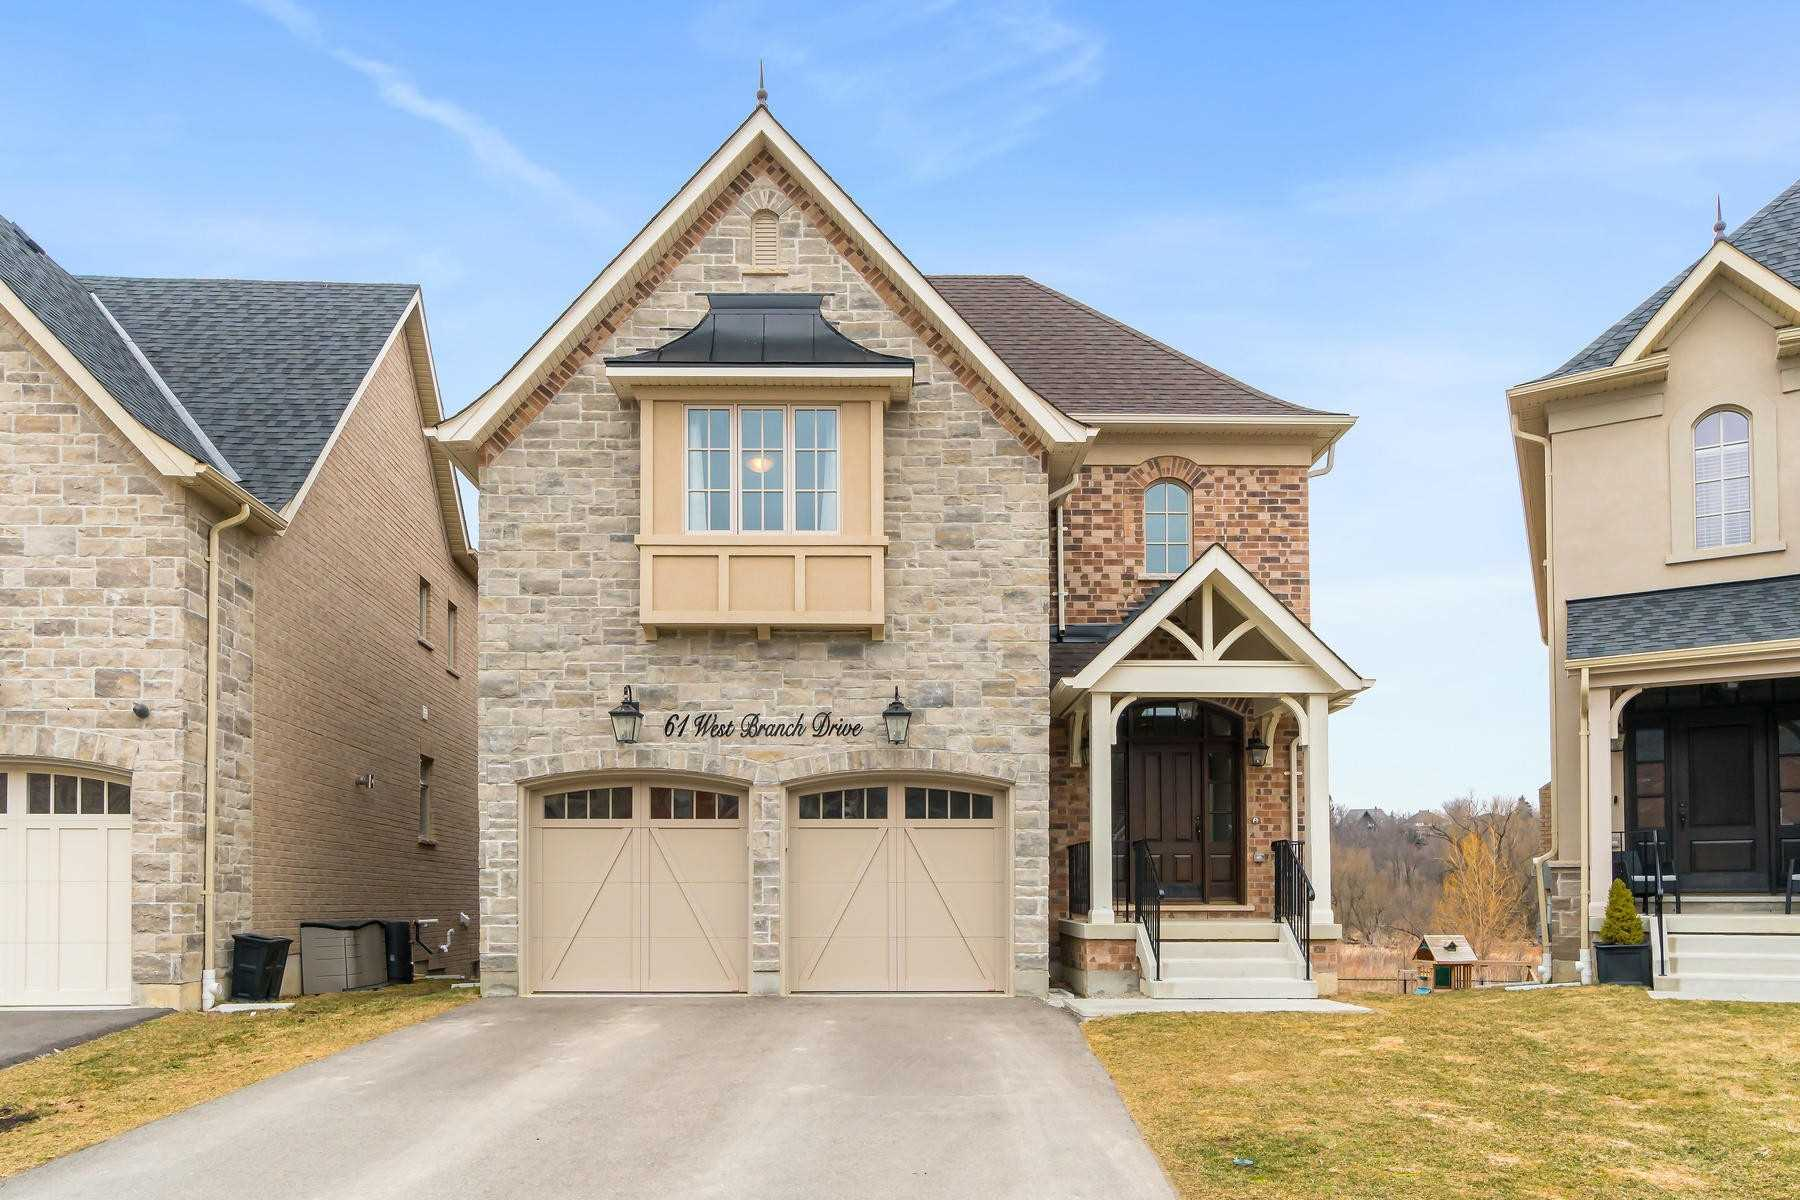 61 West Branch Dr, Halton Hills, L7G0J7, 4 Bedrooms Bedrooms, ,5 BathroomsBathrooms,Detached,For Sale,West Branch,W4721409